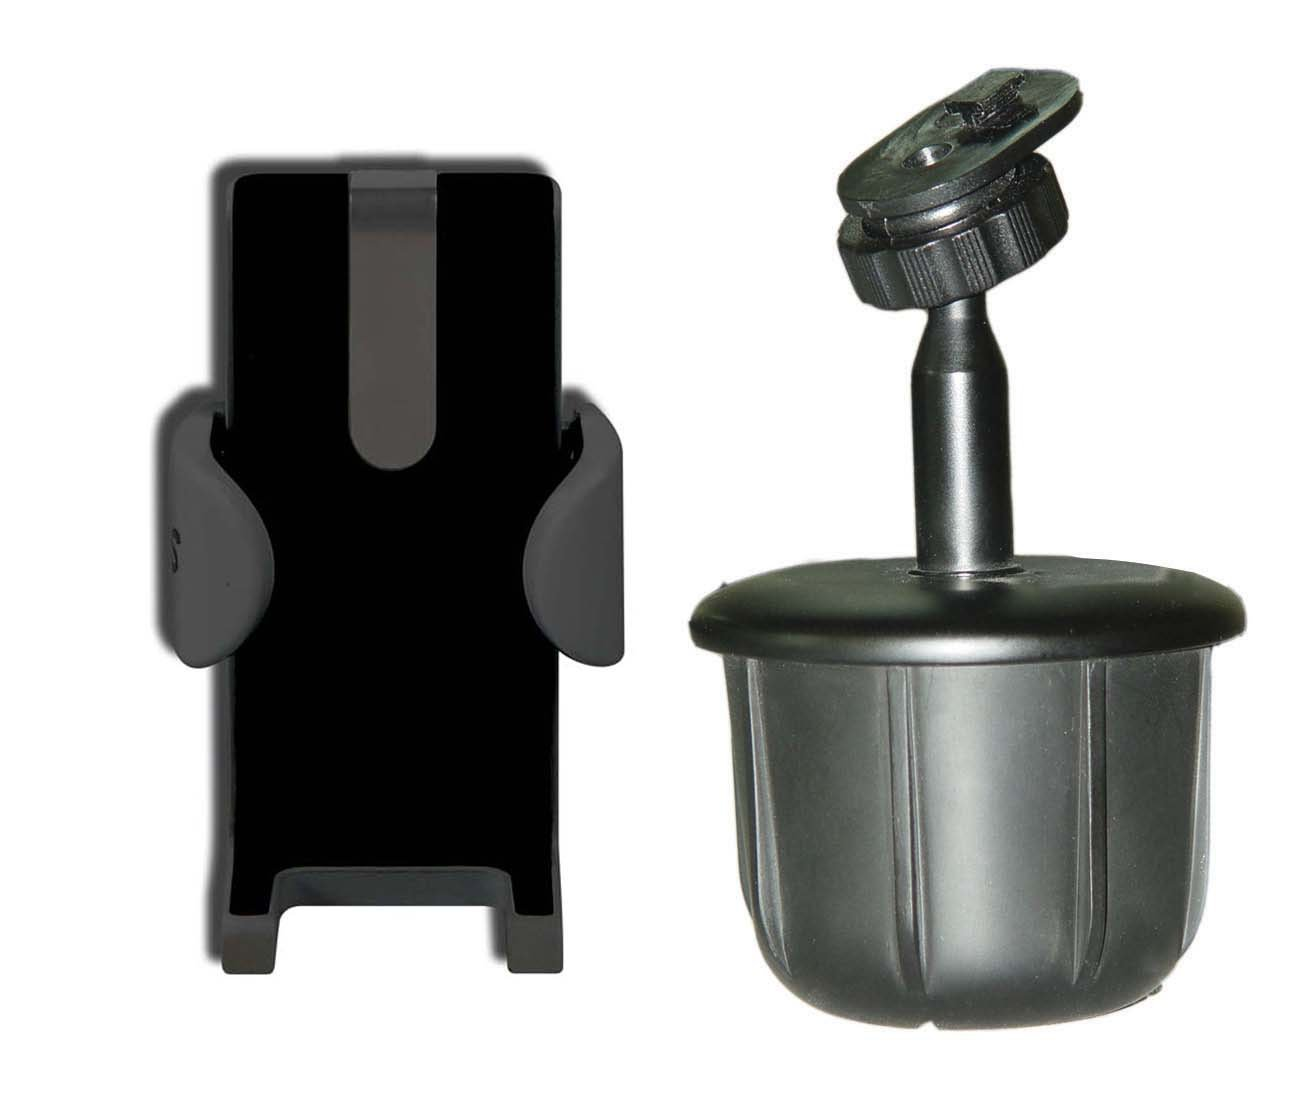 Type S AC52472-60//6 Universal Cup Holder Mounting System